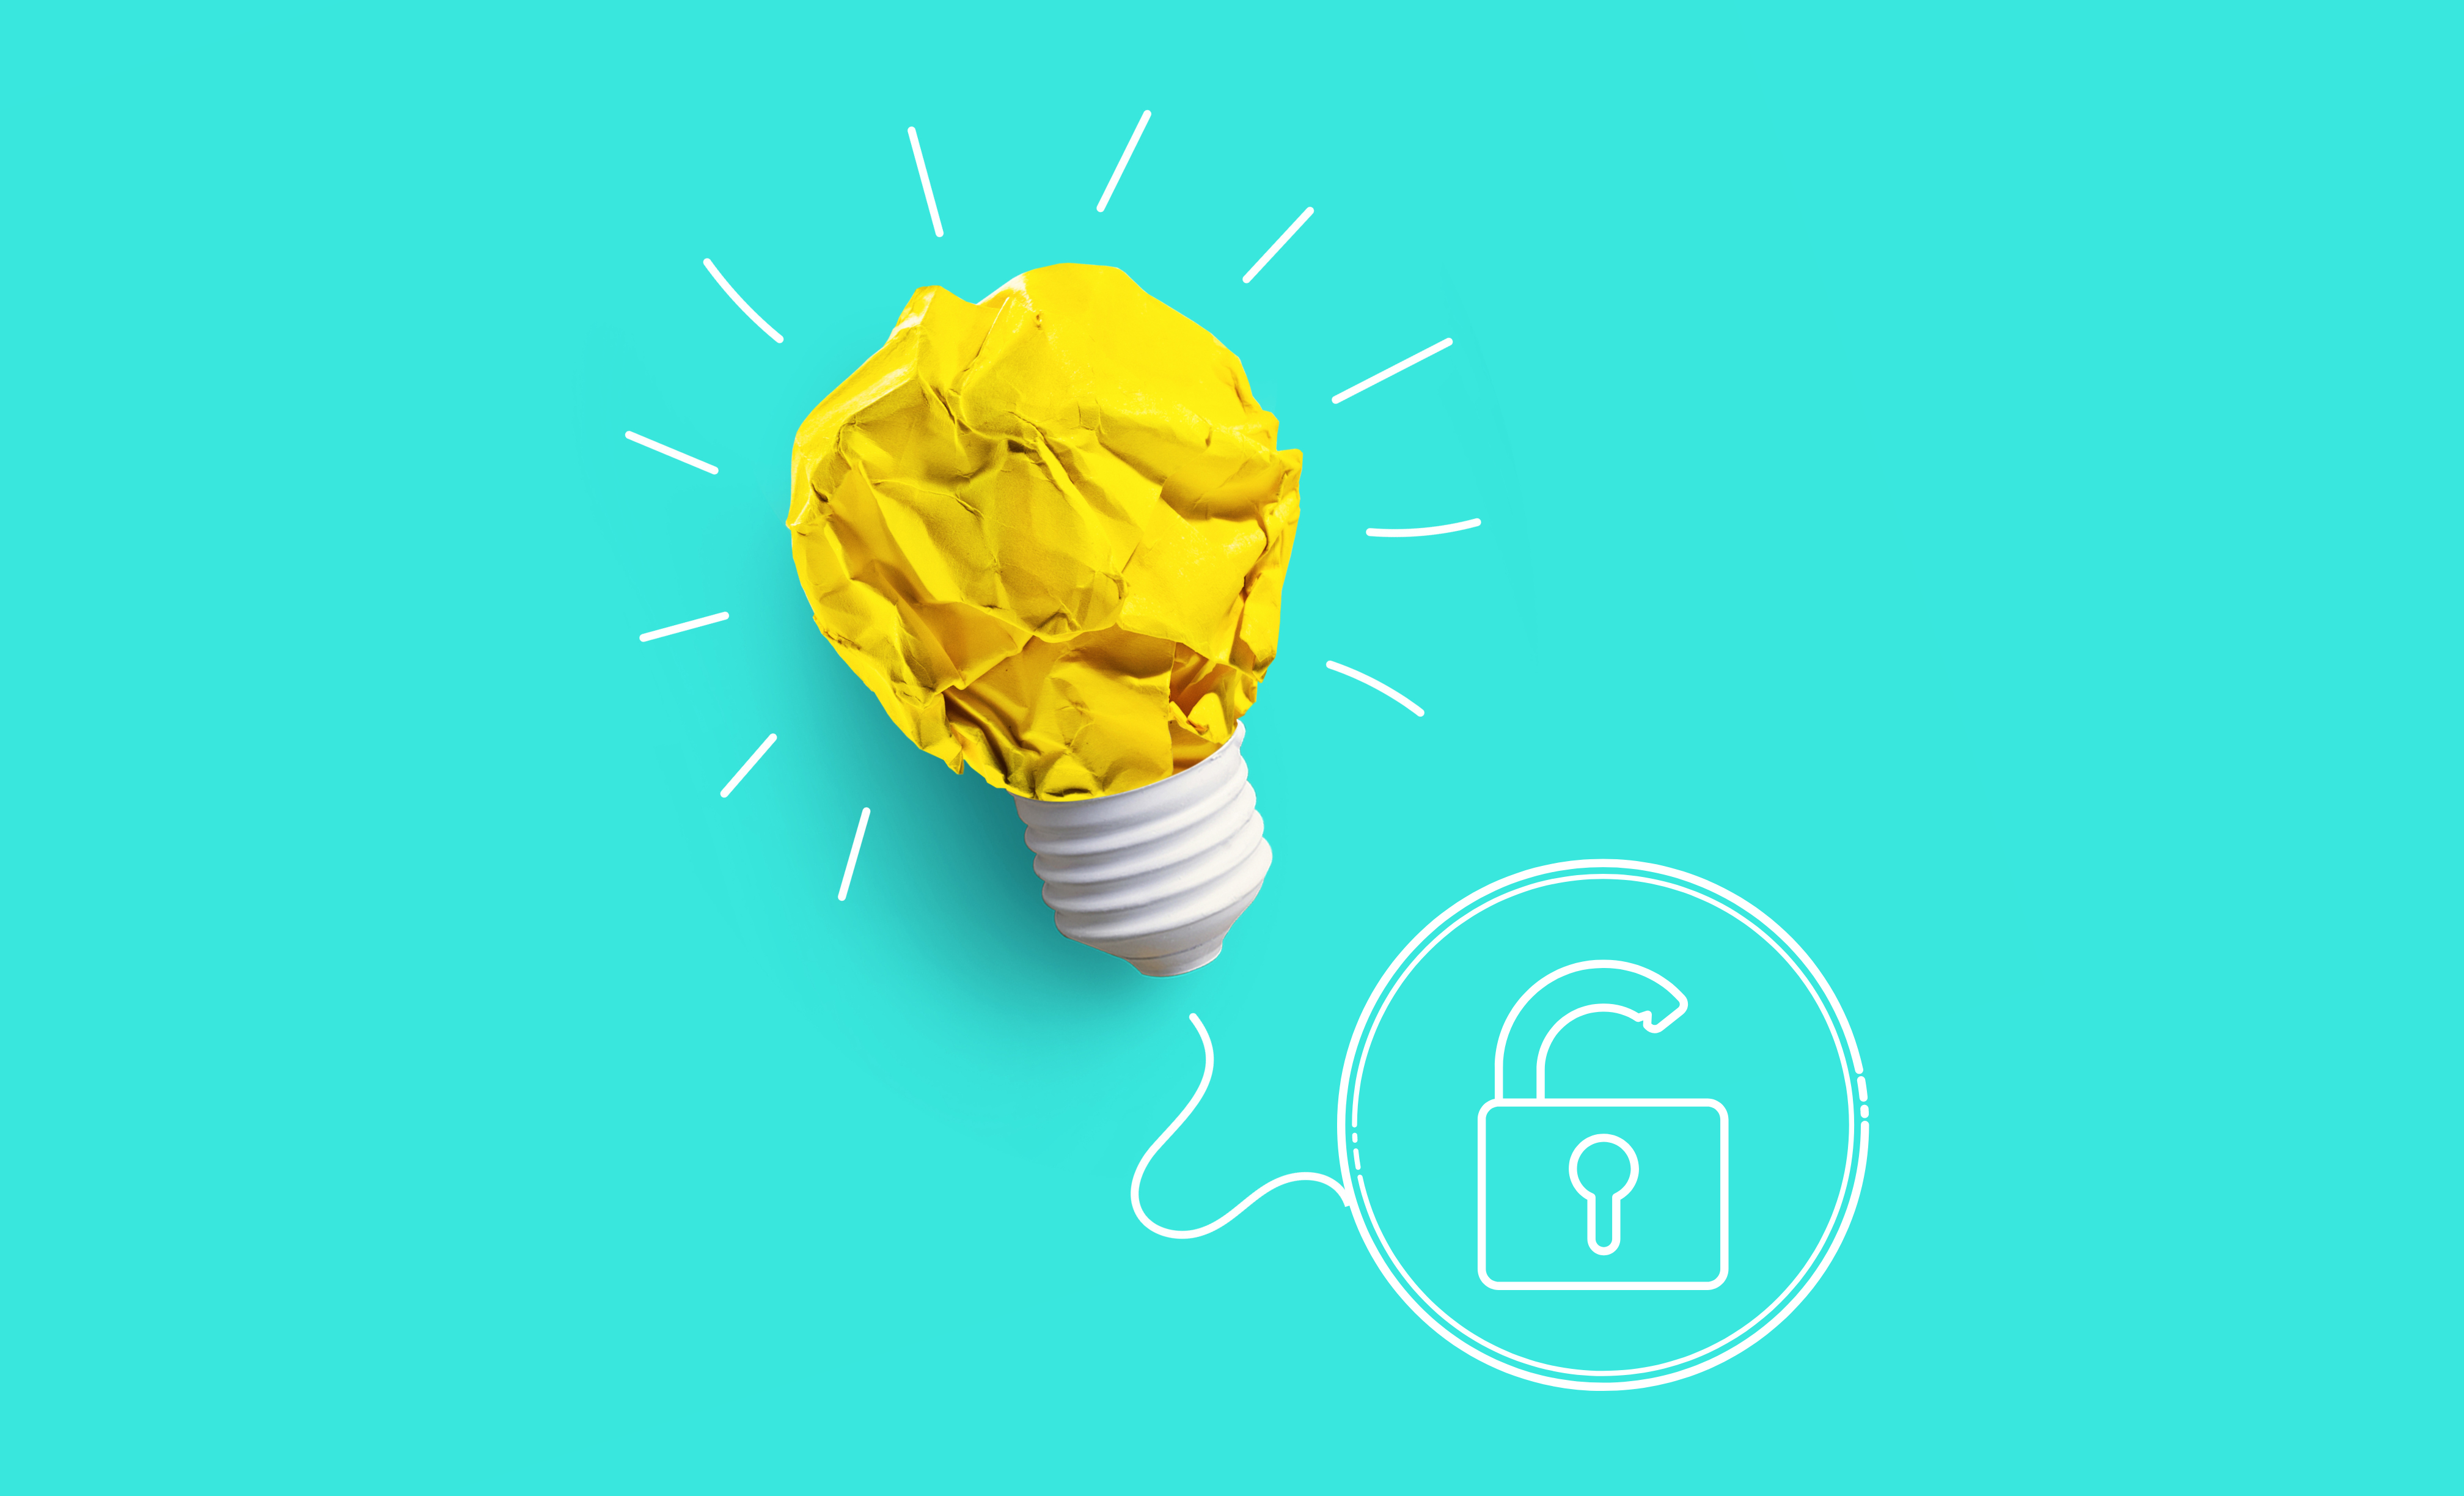 A lightbulb made out of paper connected to an open lock symbolizing open access.